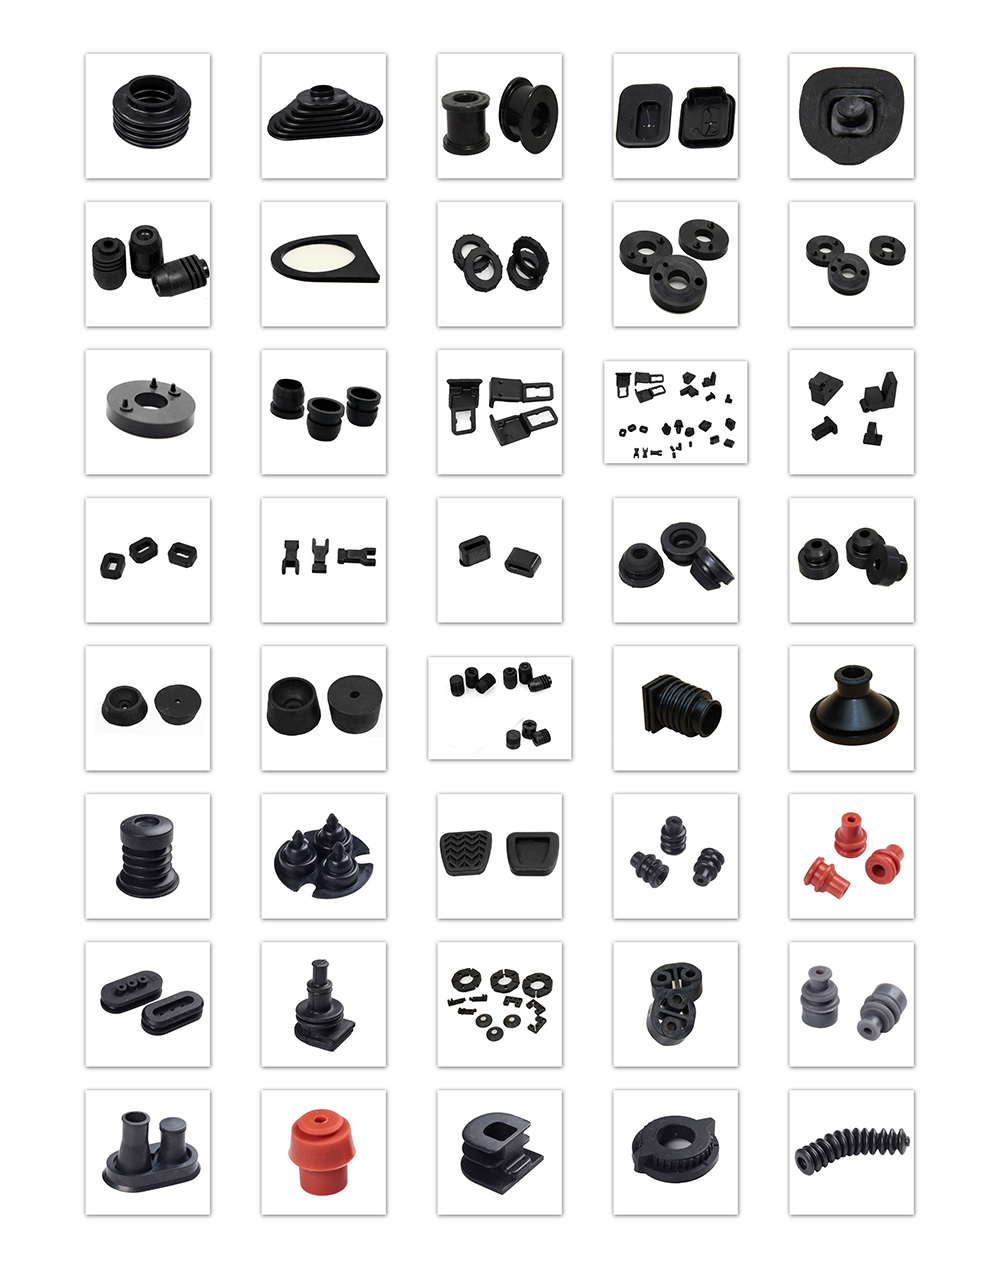 ADA  pliant Hurricane Protection System furthermore equalseal likewise Fuel Tank F220k1 likewise Pool parts product furthermore Blog. on sponge rubber gasket